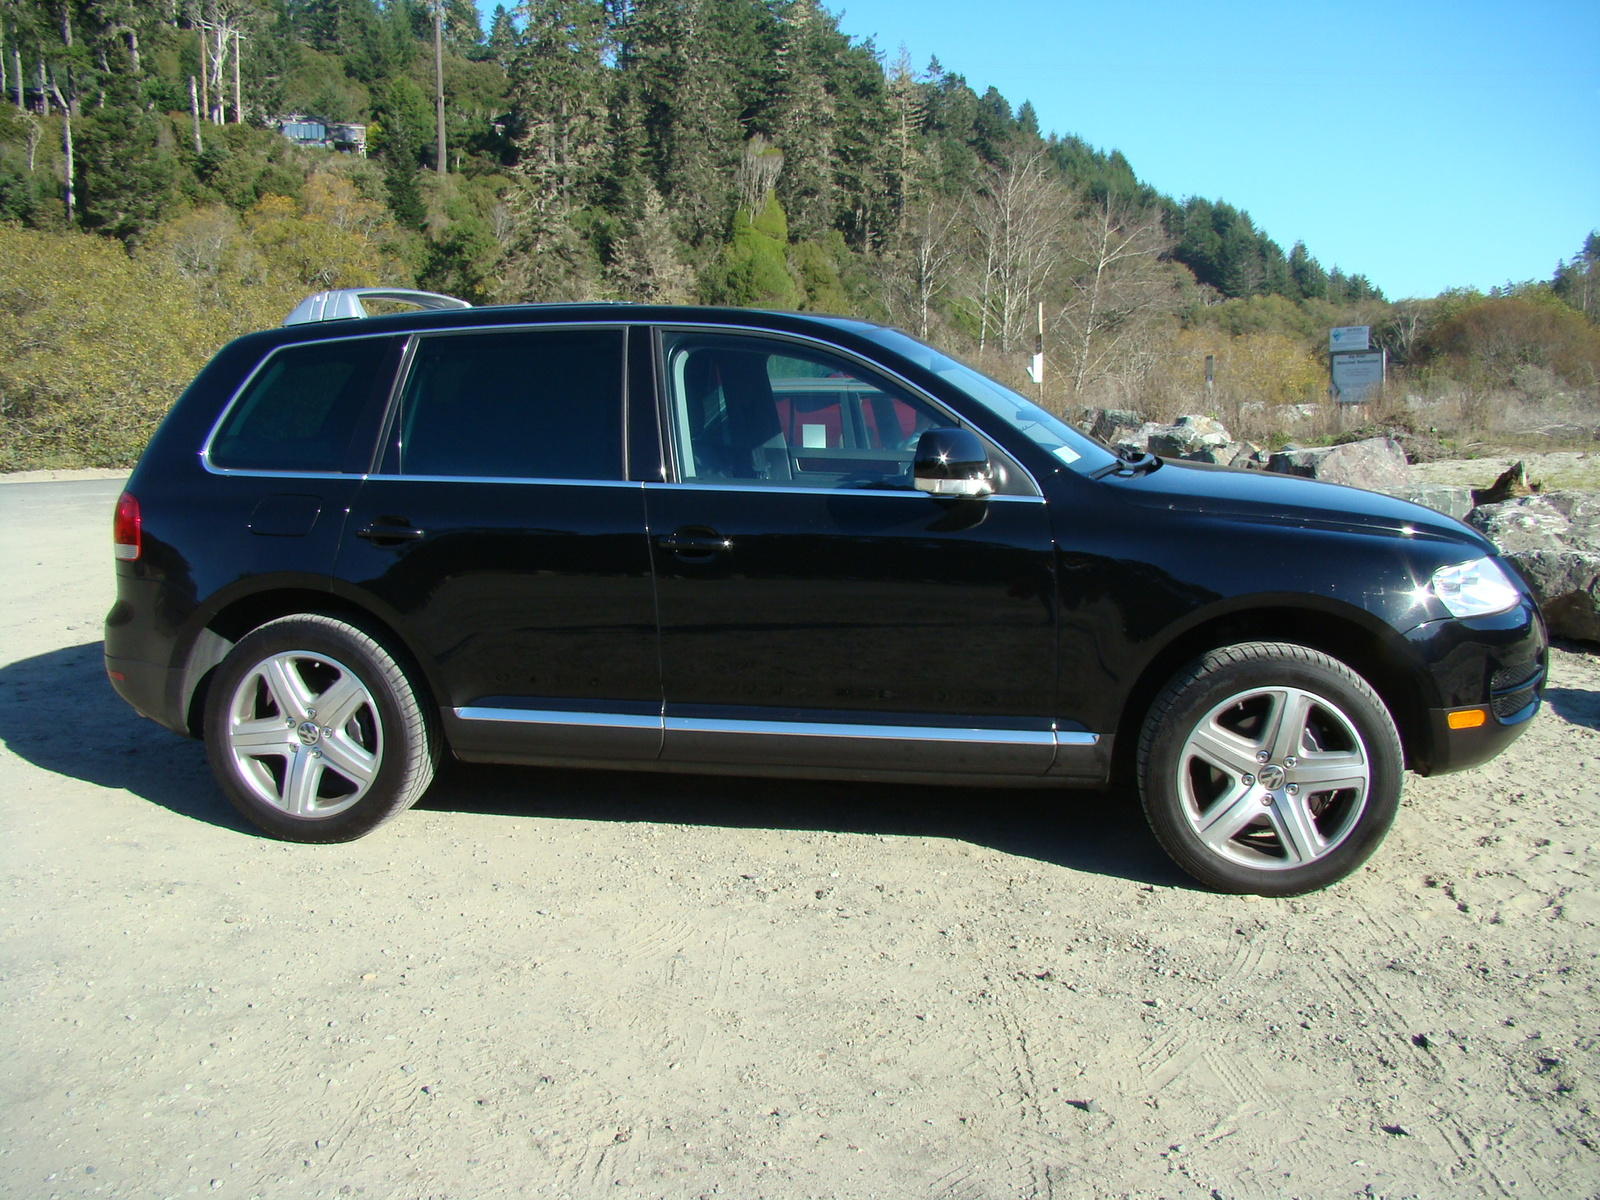 Volkswagen Touareg 2005 photo - 2